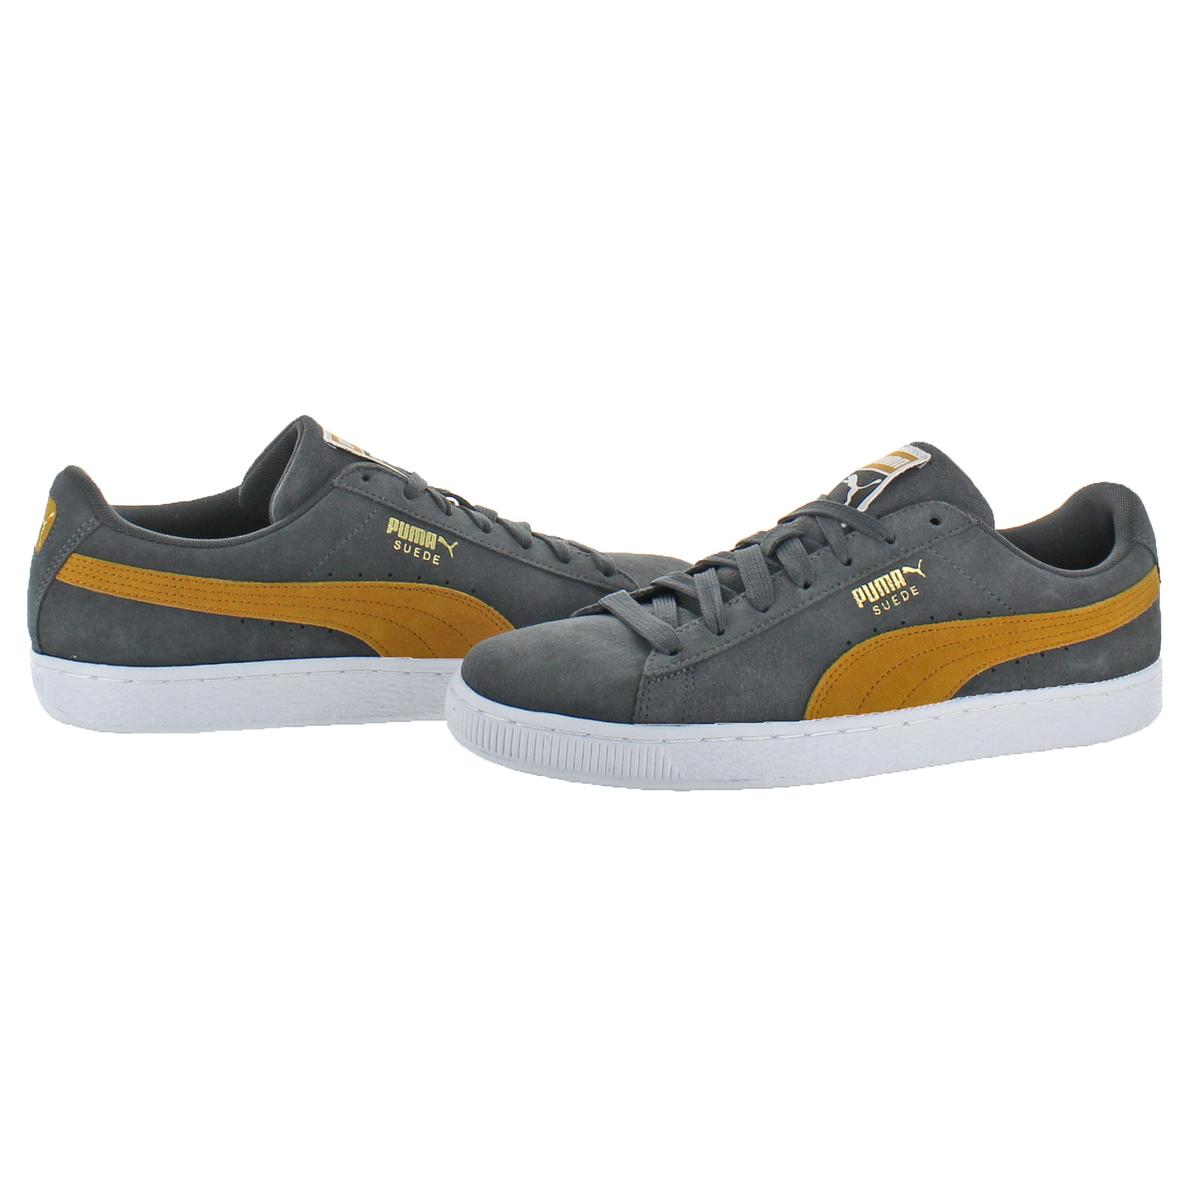 Puma-Suede-Classic-Men-039-s-Fashion-Sneakers-Shoes thumbnail 21